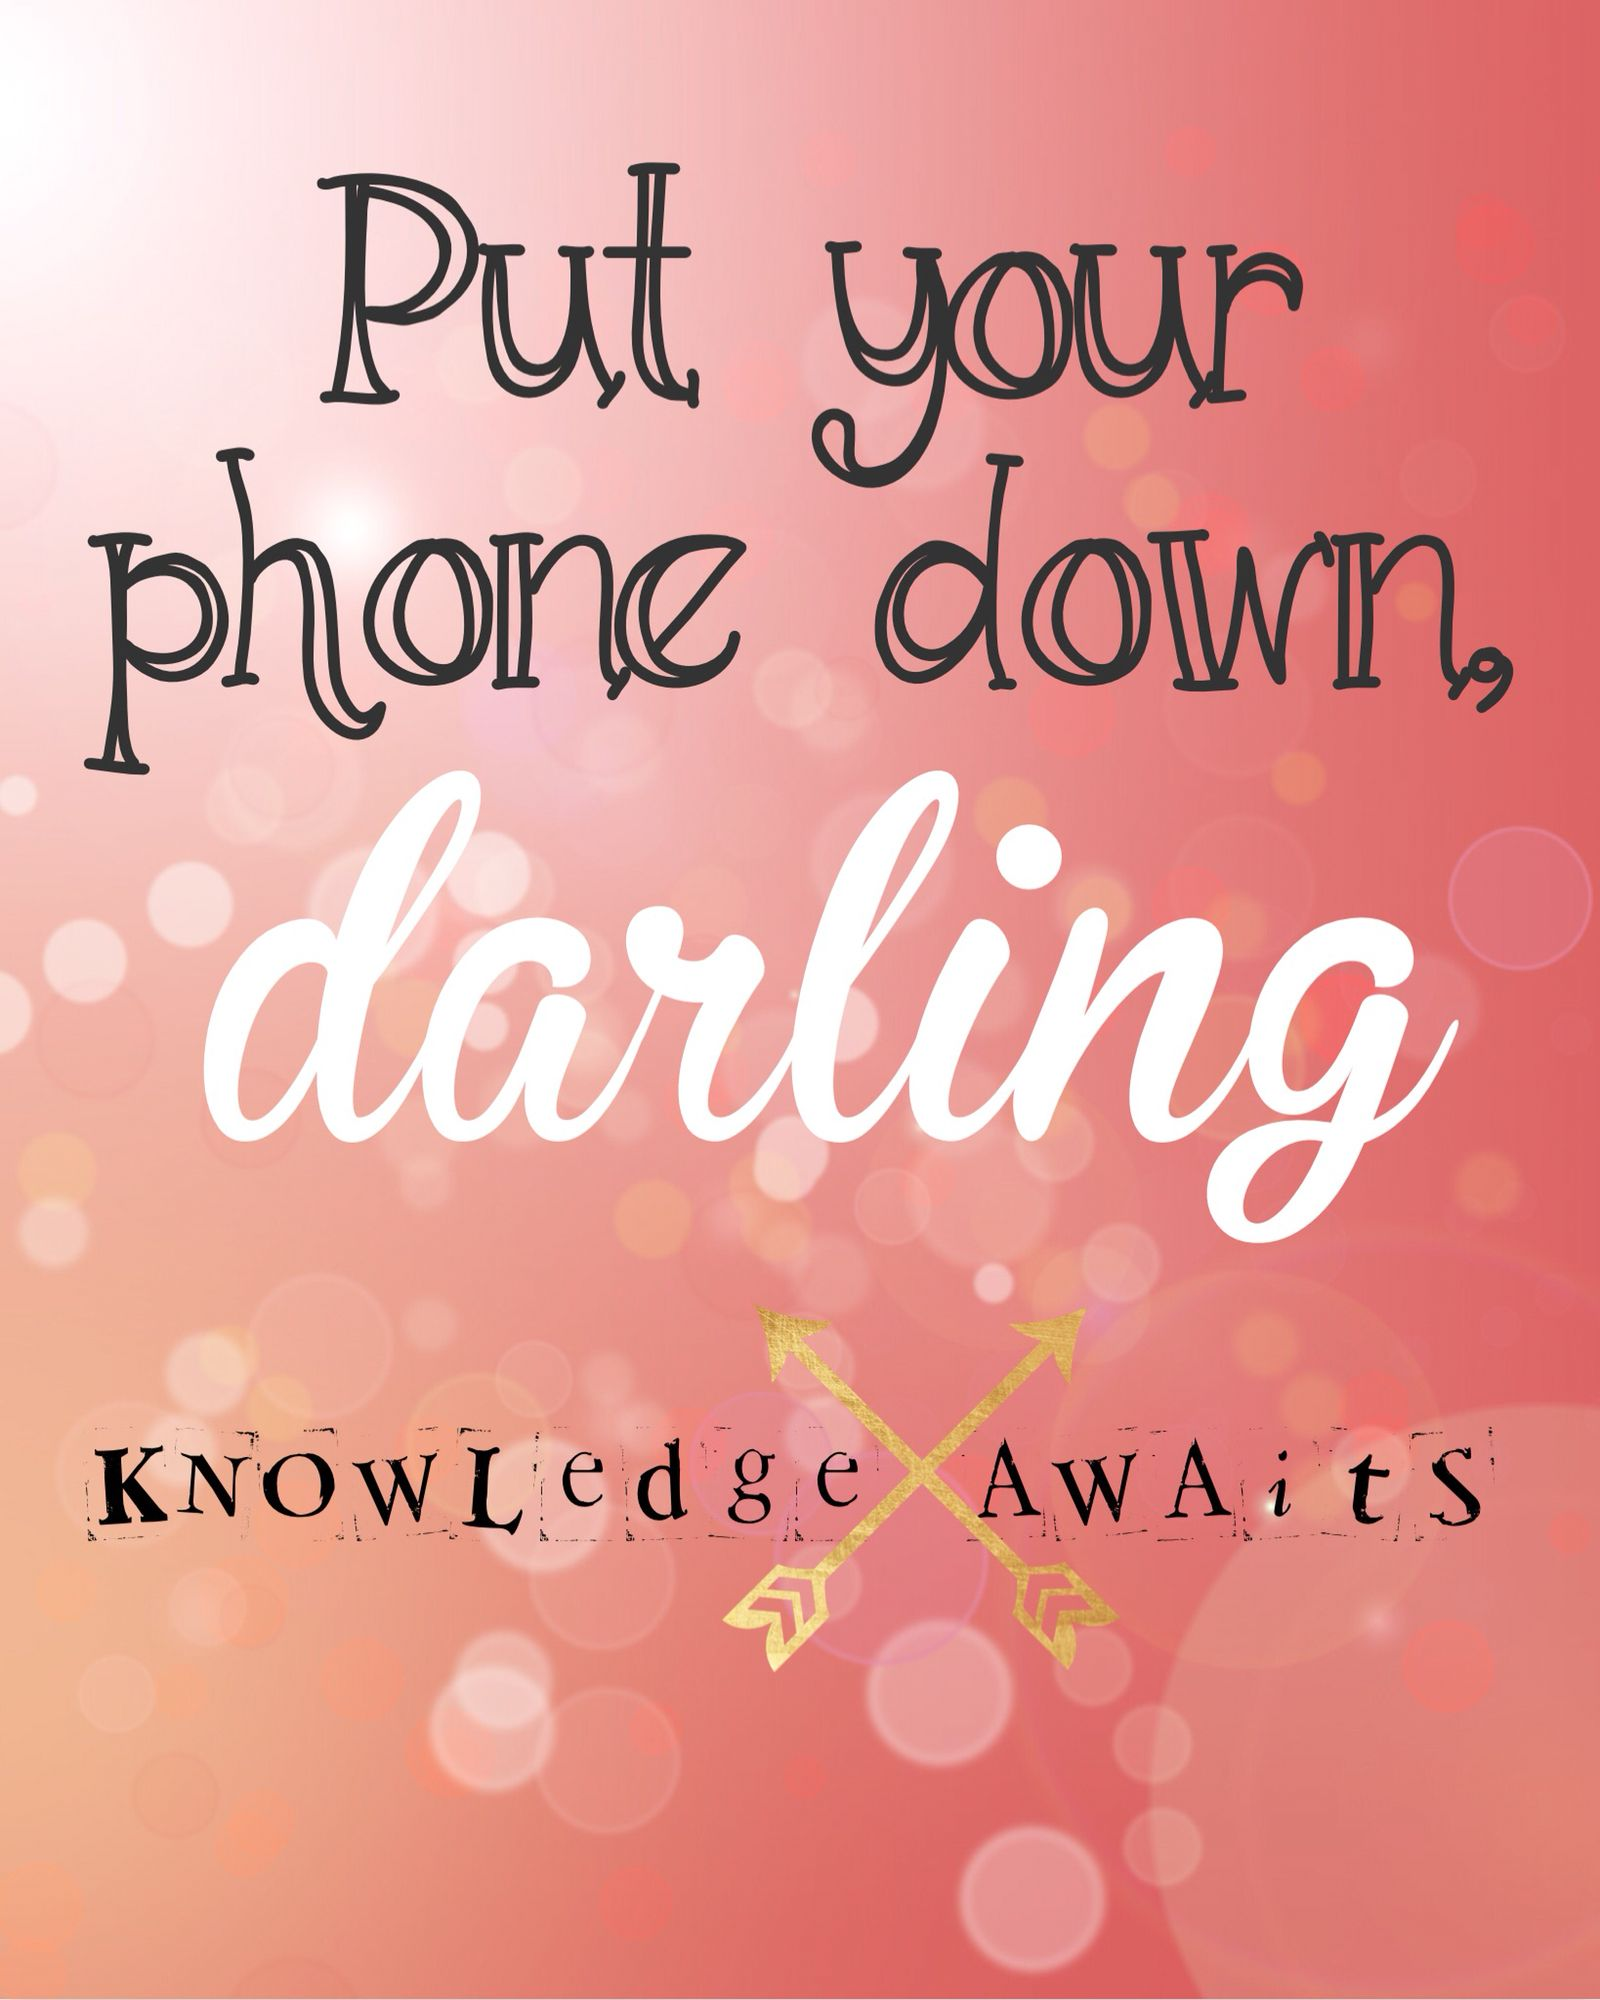 Put Your Phone Down Darling Knowledge Awaits Made This To Remind Myself When I Study